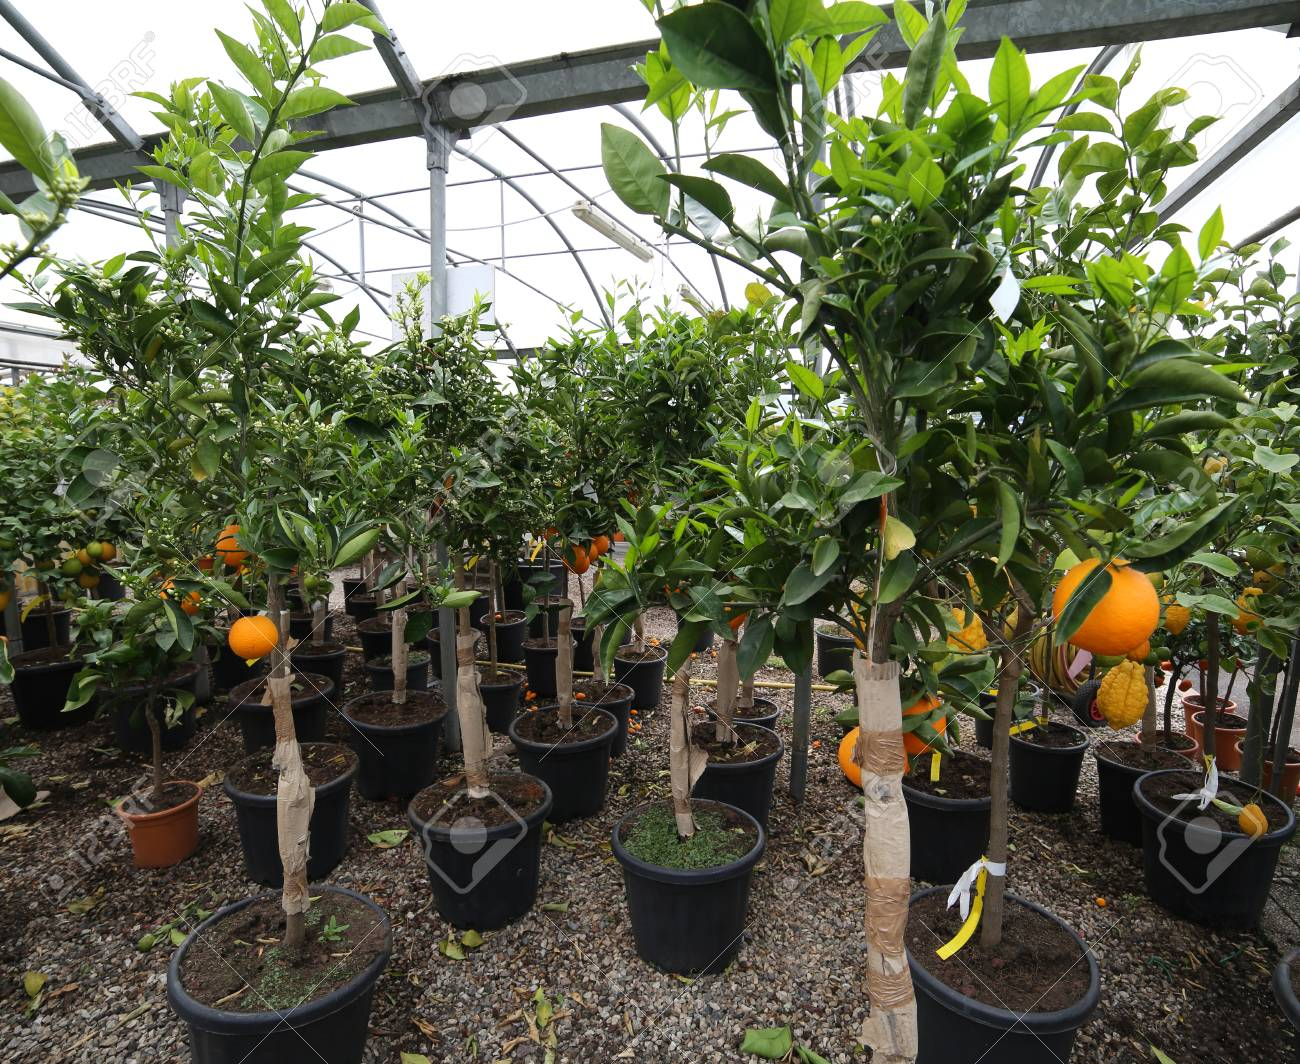 Many Fruit Trees With Clementine And Orange For Sale In The Tree